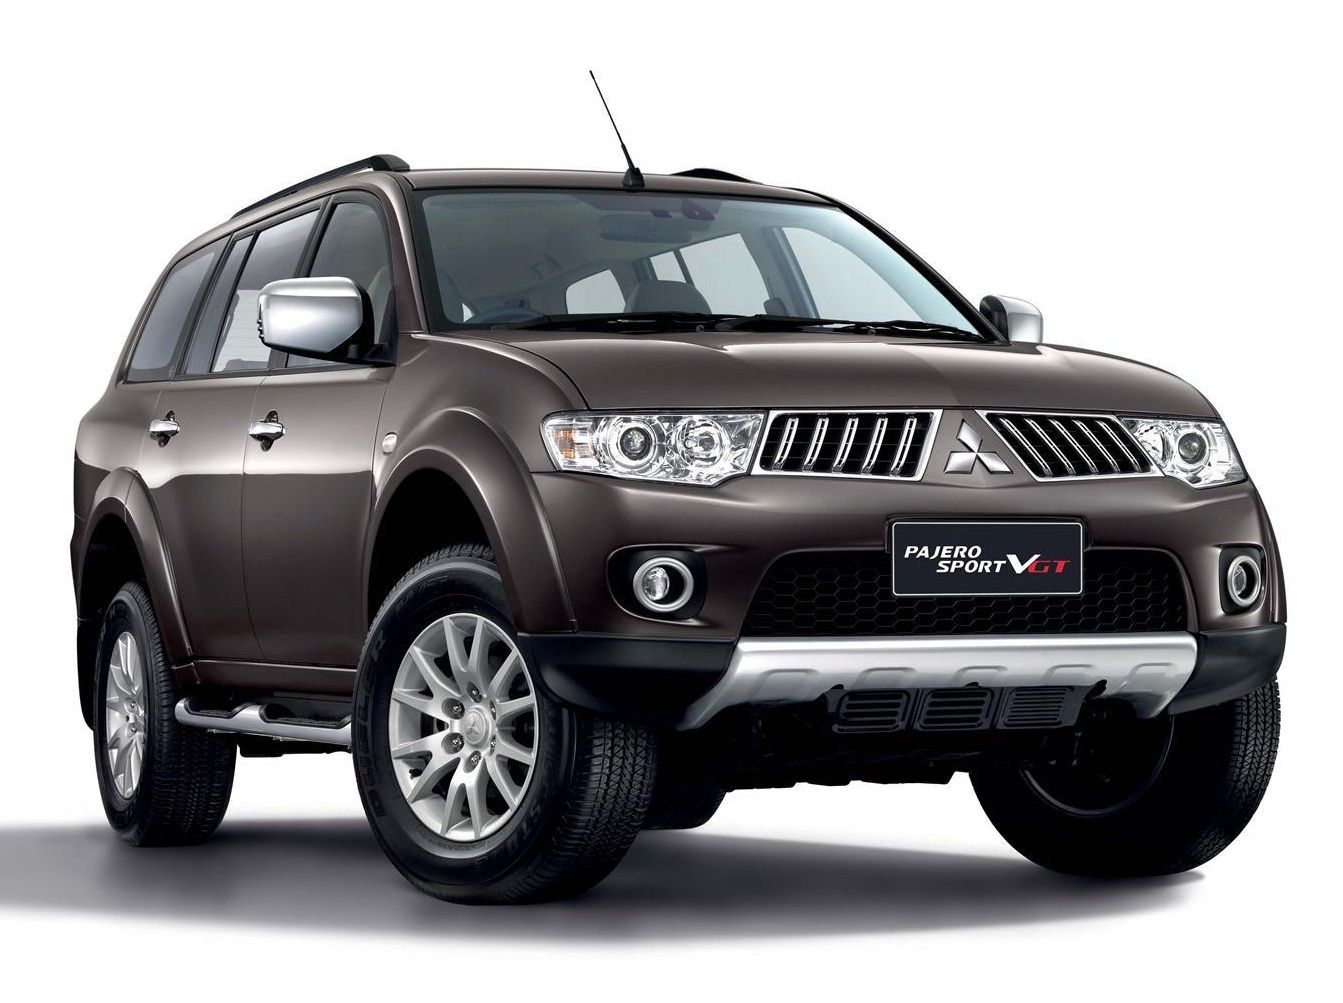 New 2015 mitsubishi pajero sport price and release date